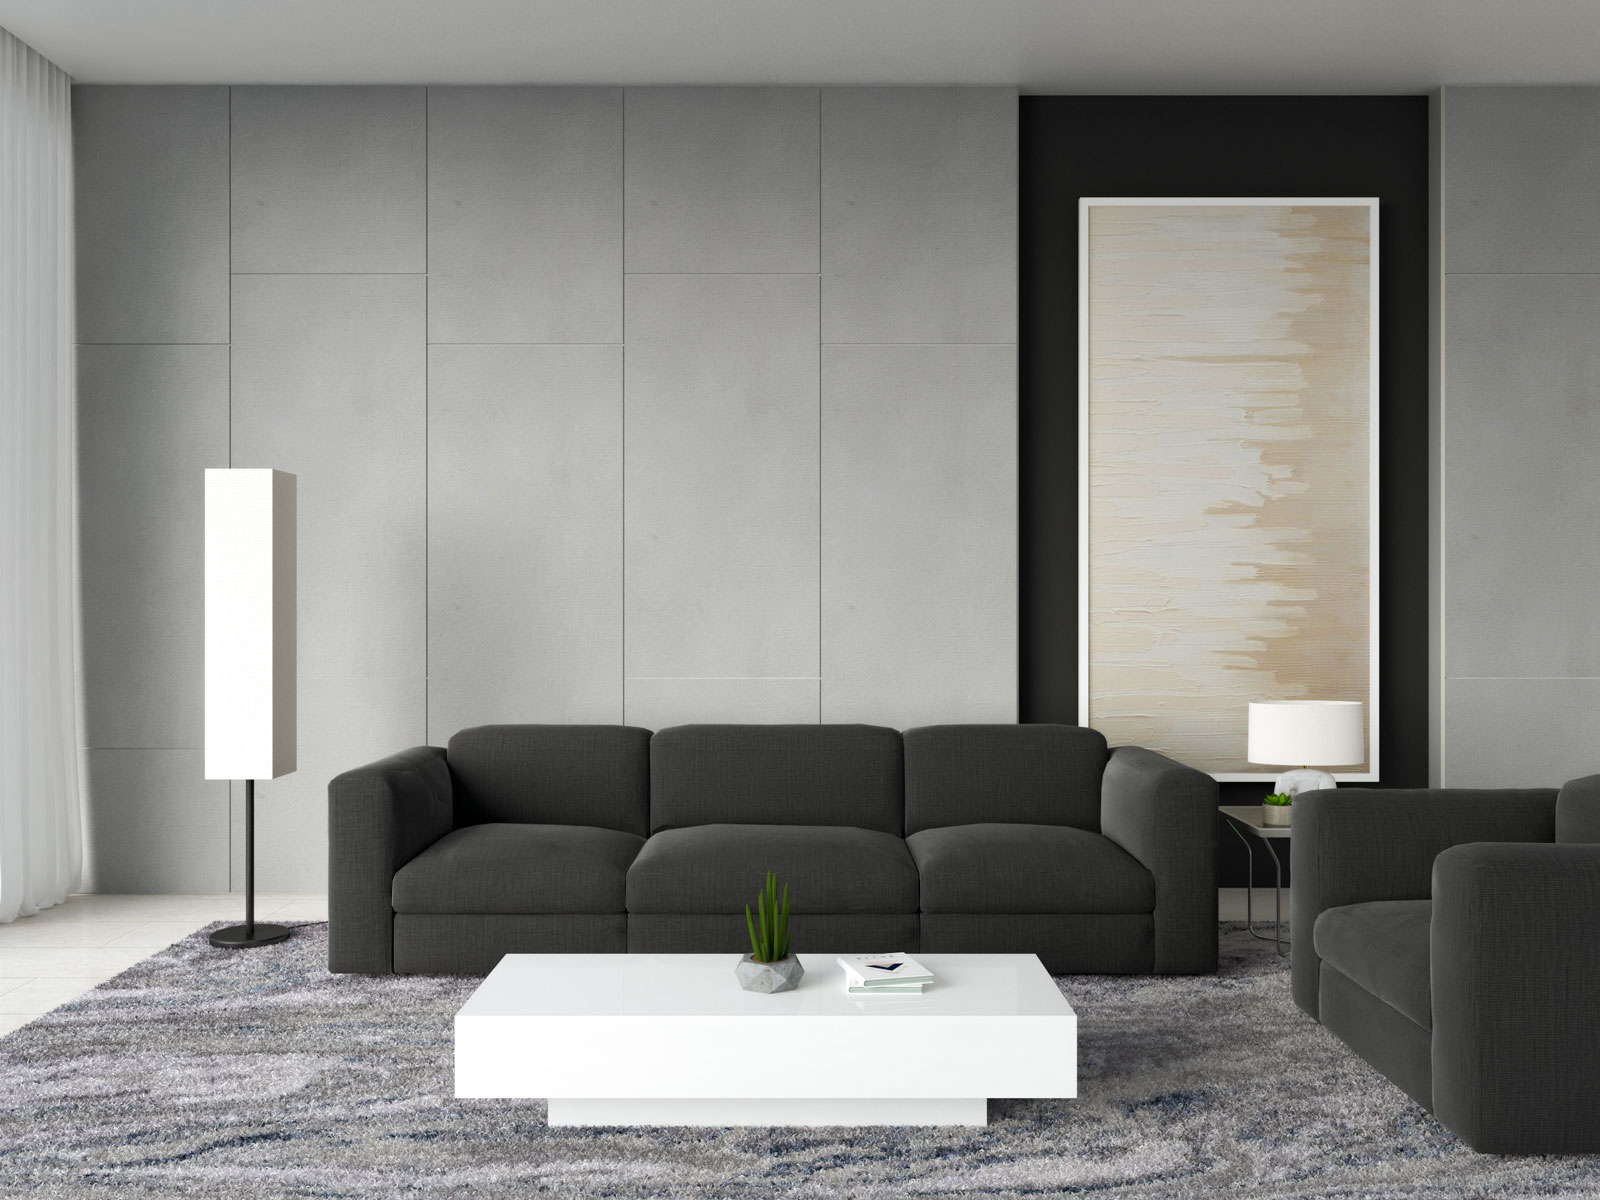 White coffee table with black couch